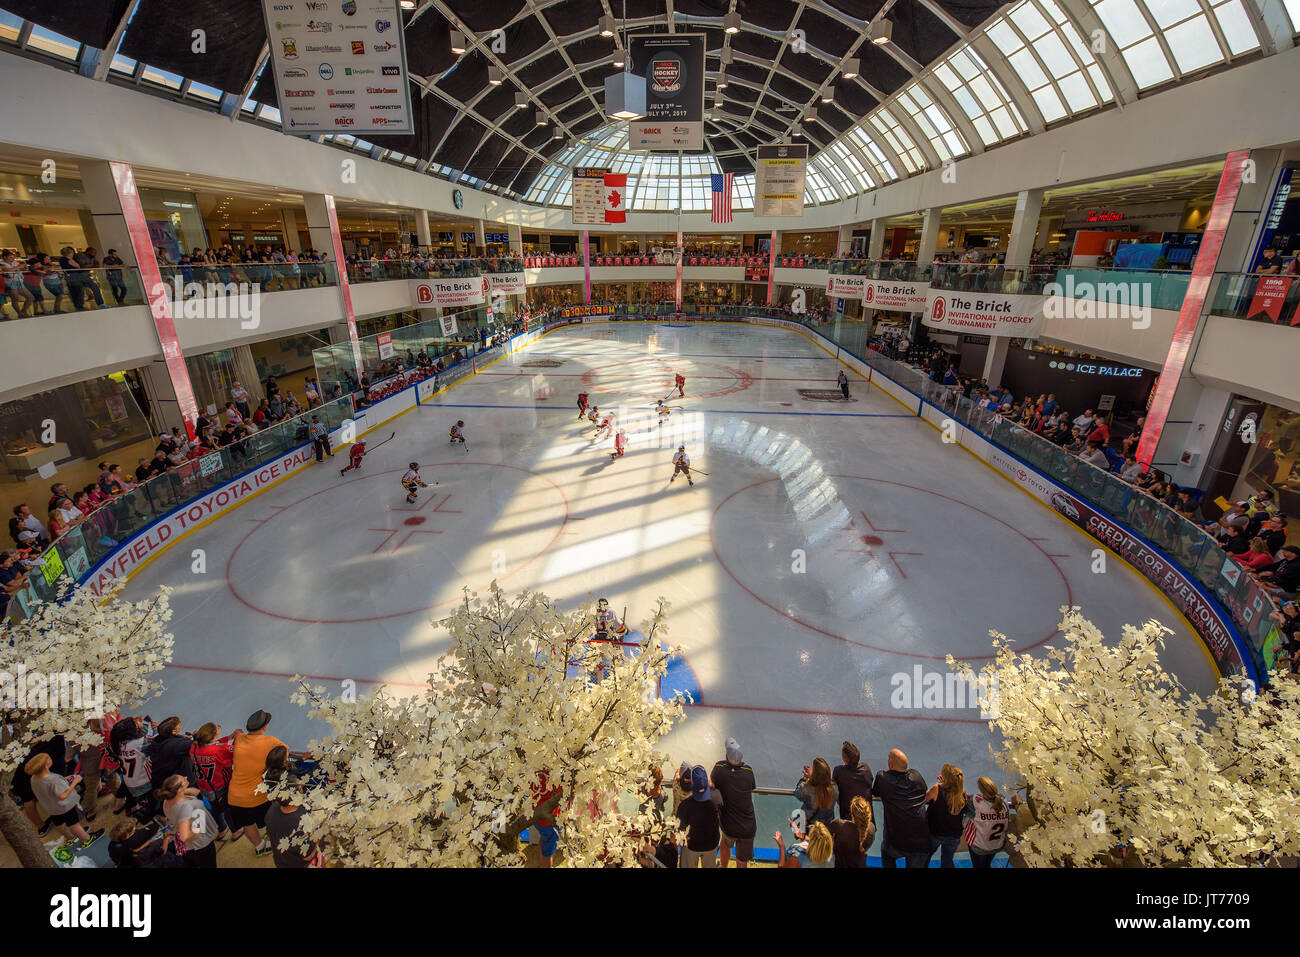 Ice hockey arena in the West Edmonton Mall. - Stock Image